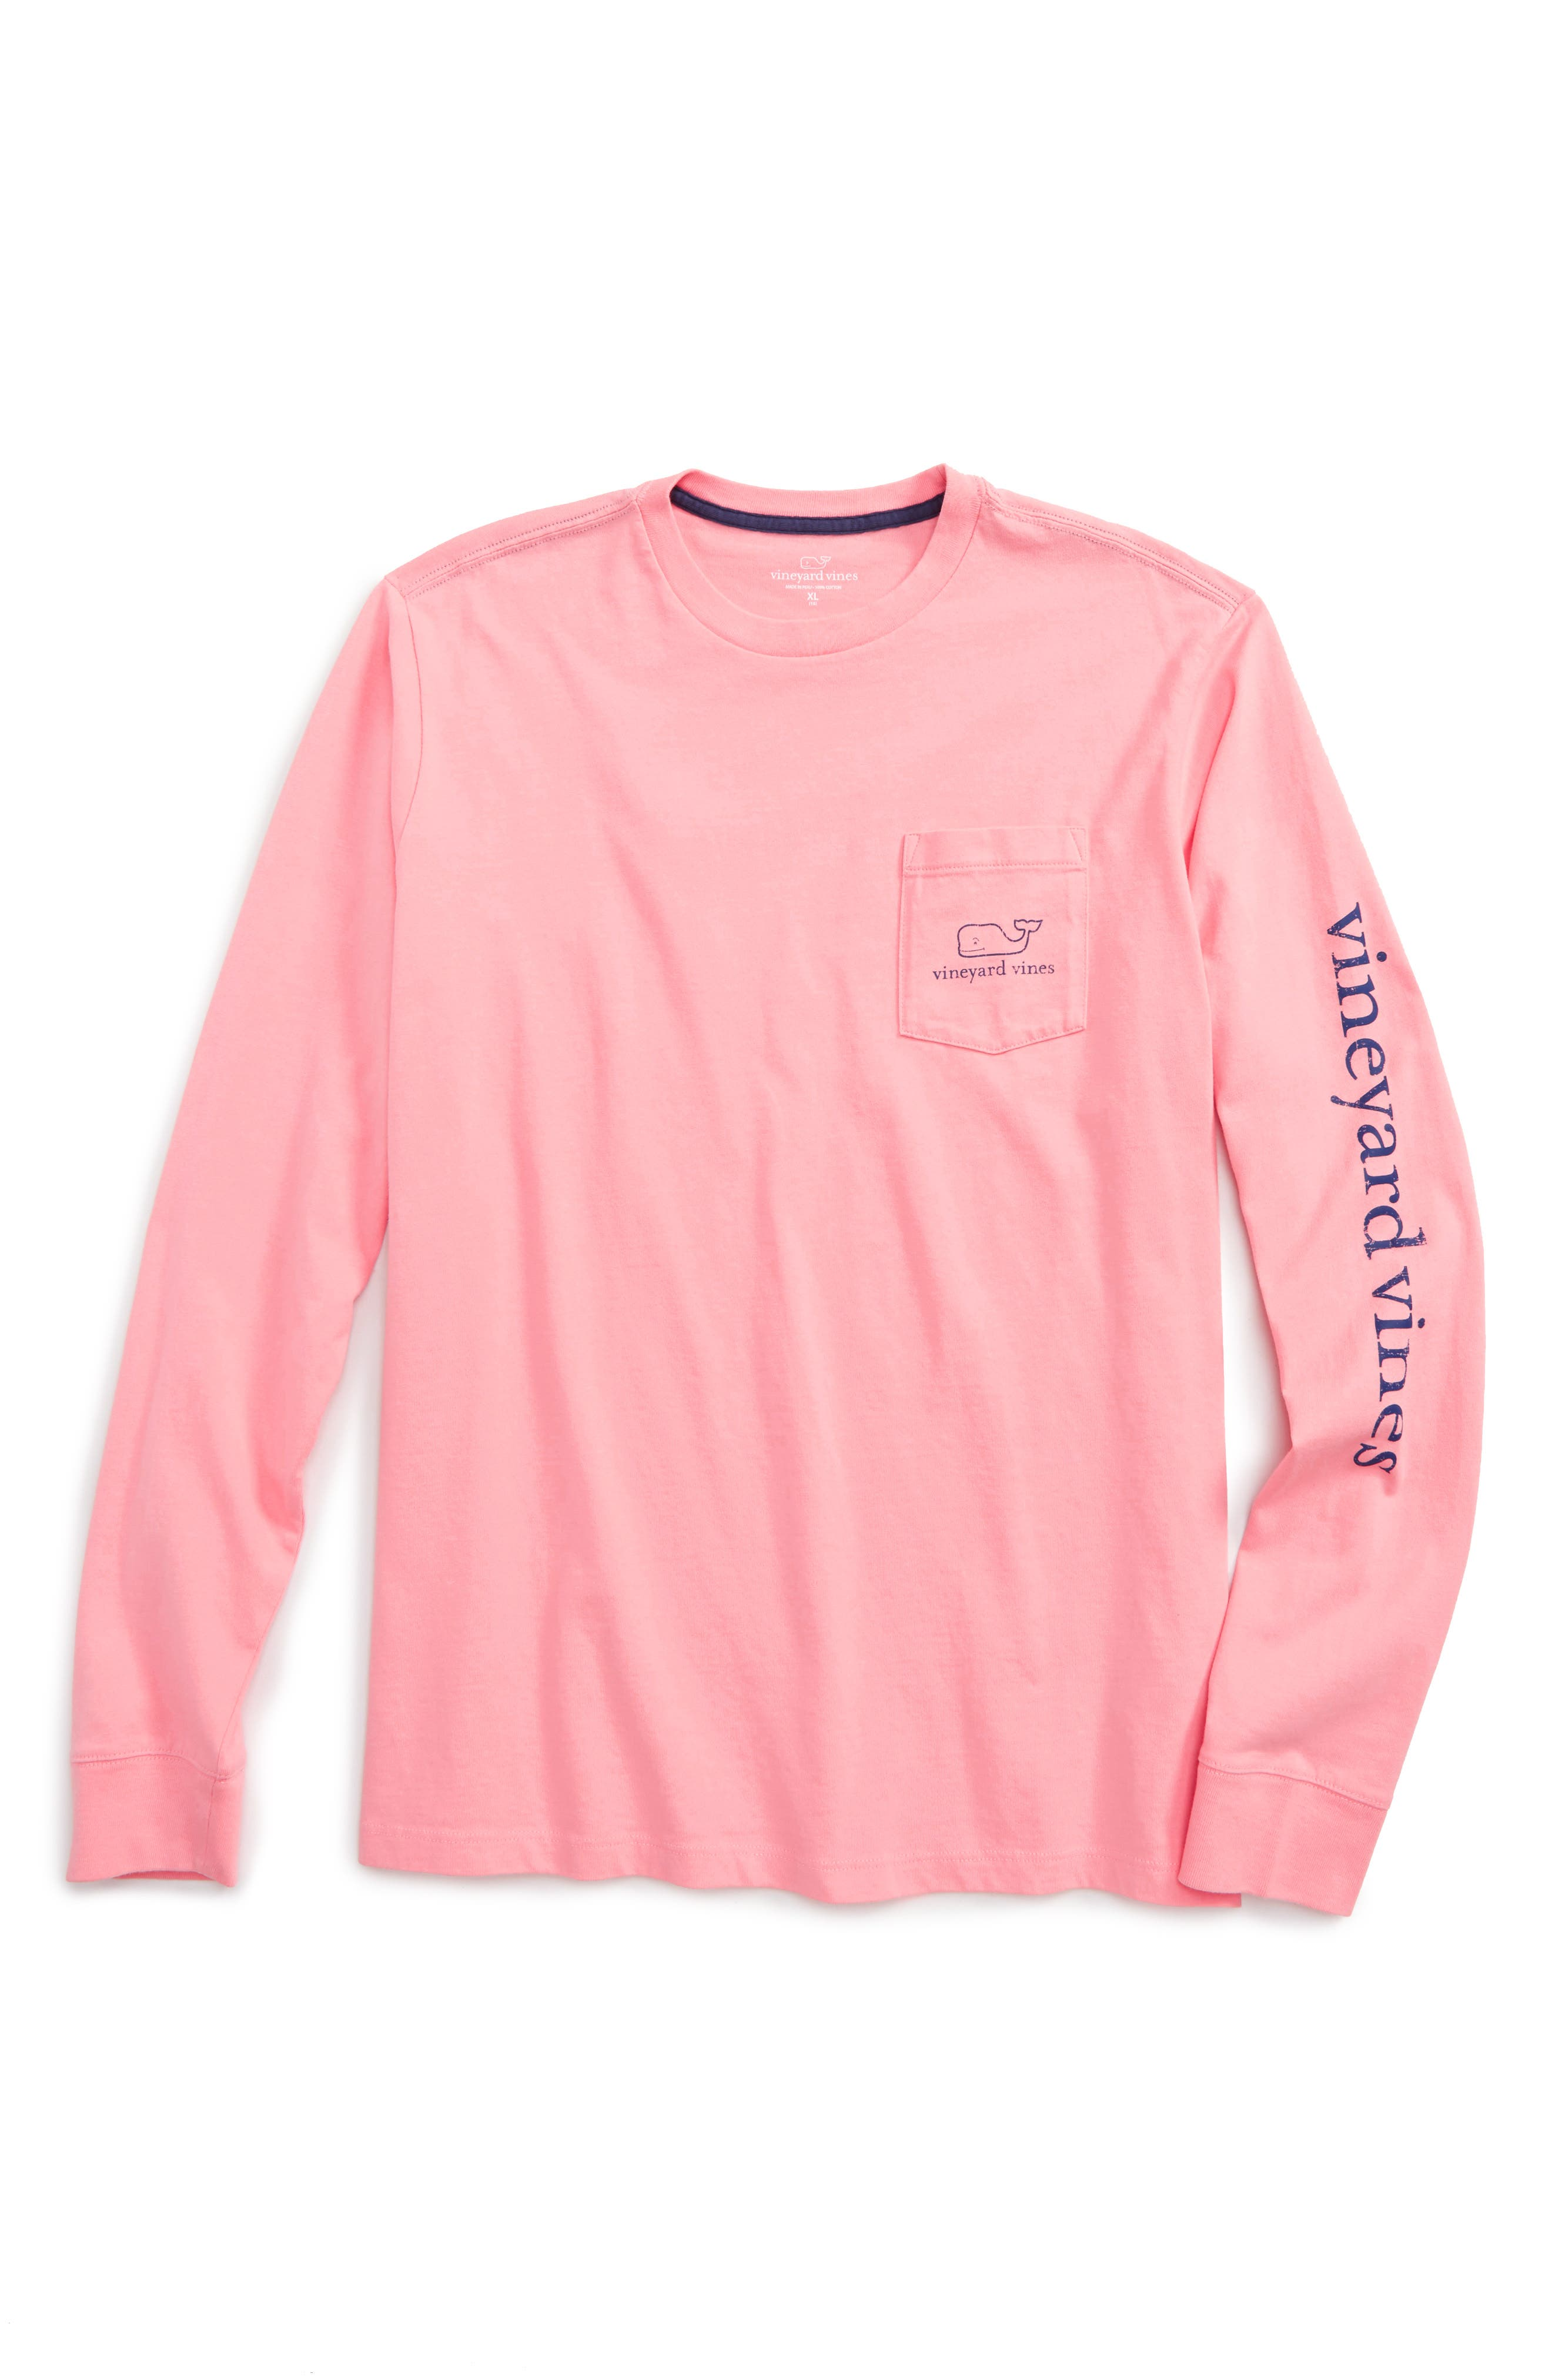 VINEYARD VINES Vintage Whale Graphic Long Sleeve T-Shirt